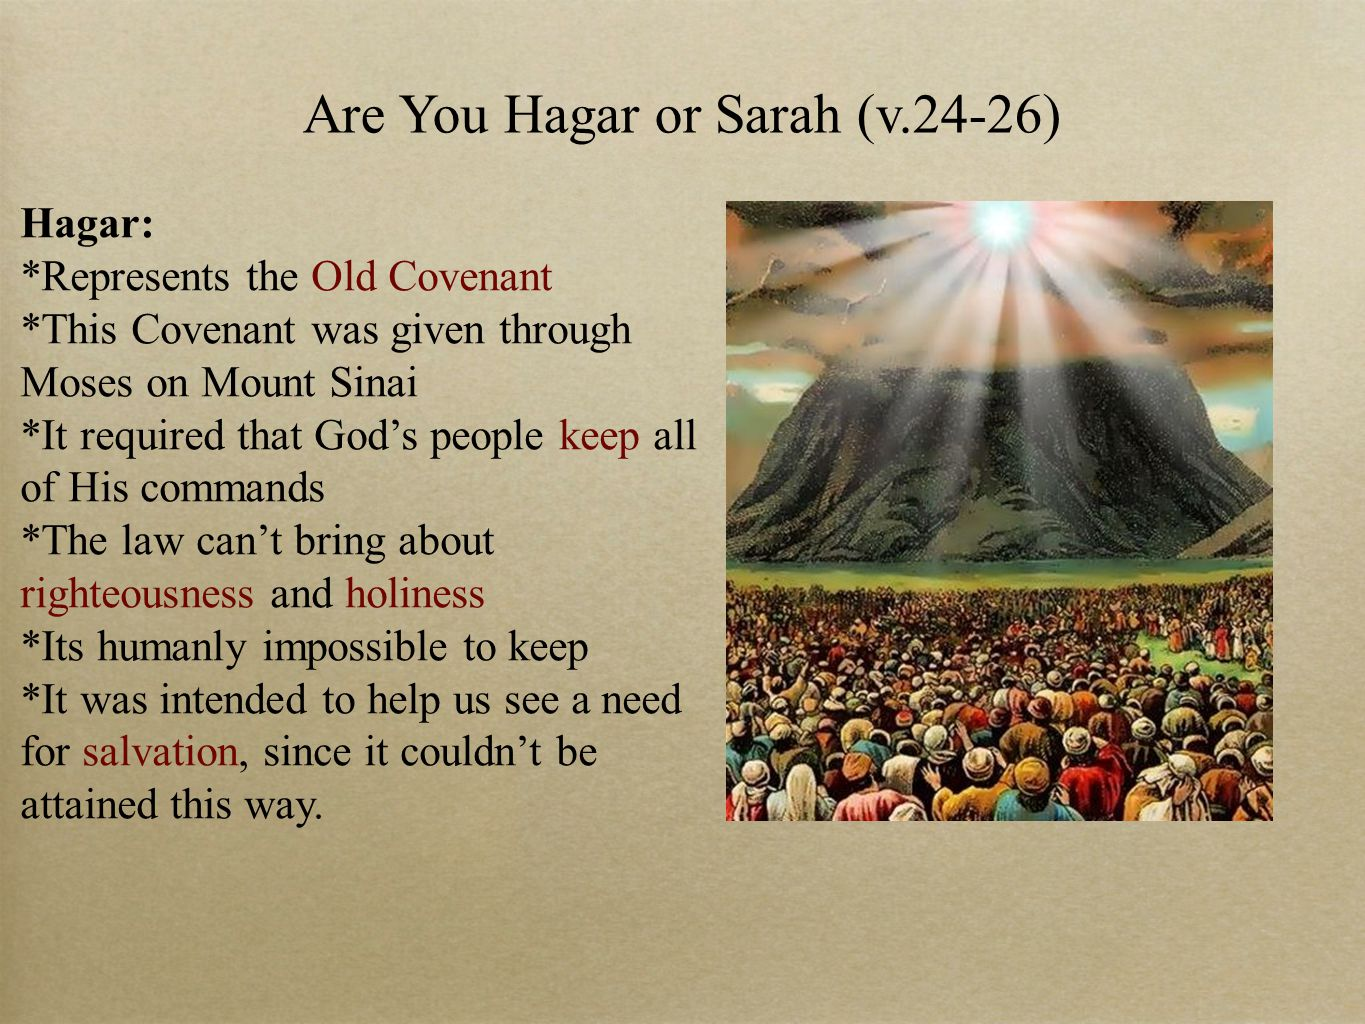 Are You Hagar or Sarah (v.24-26) Hagar: *Represents the Old Covenant *This Covenant was given through Moses on Mount Sinai *It required that God's peo